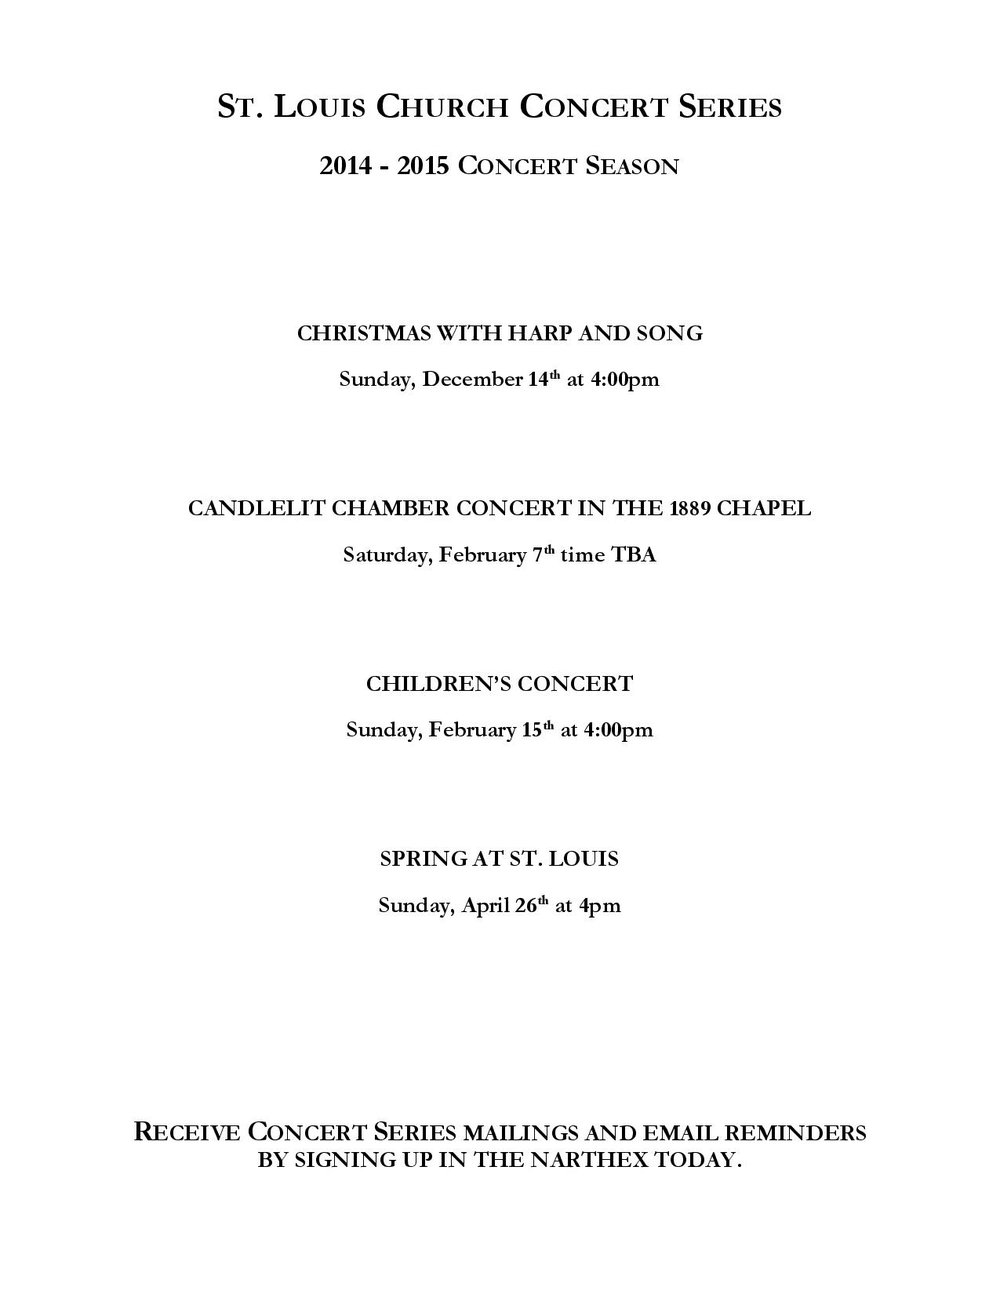 Fall Concert program 2014-page-007.jpg